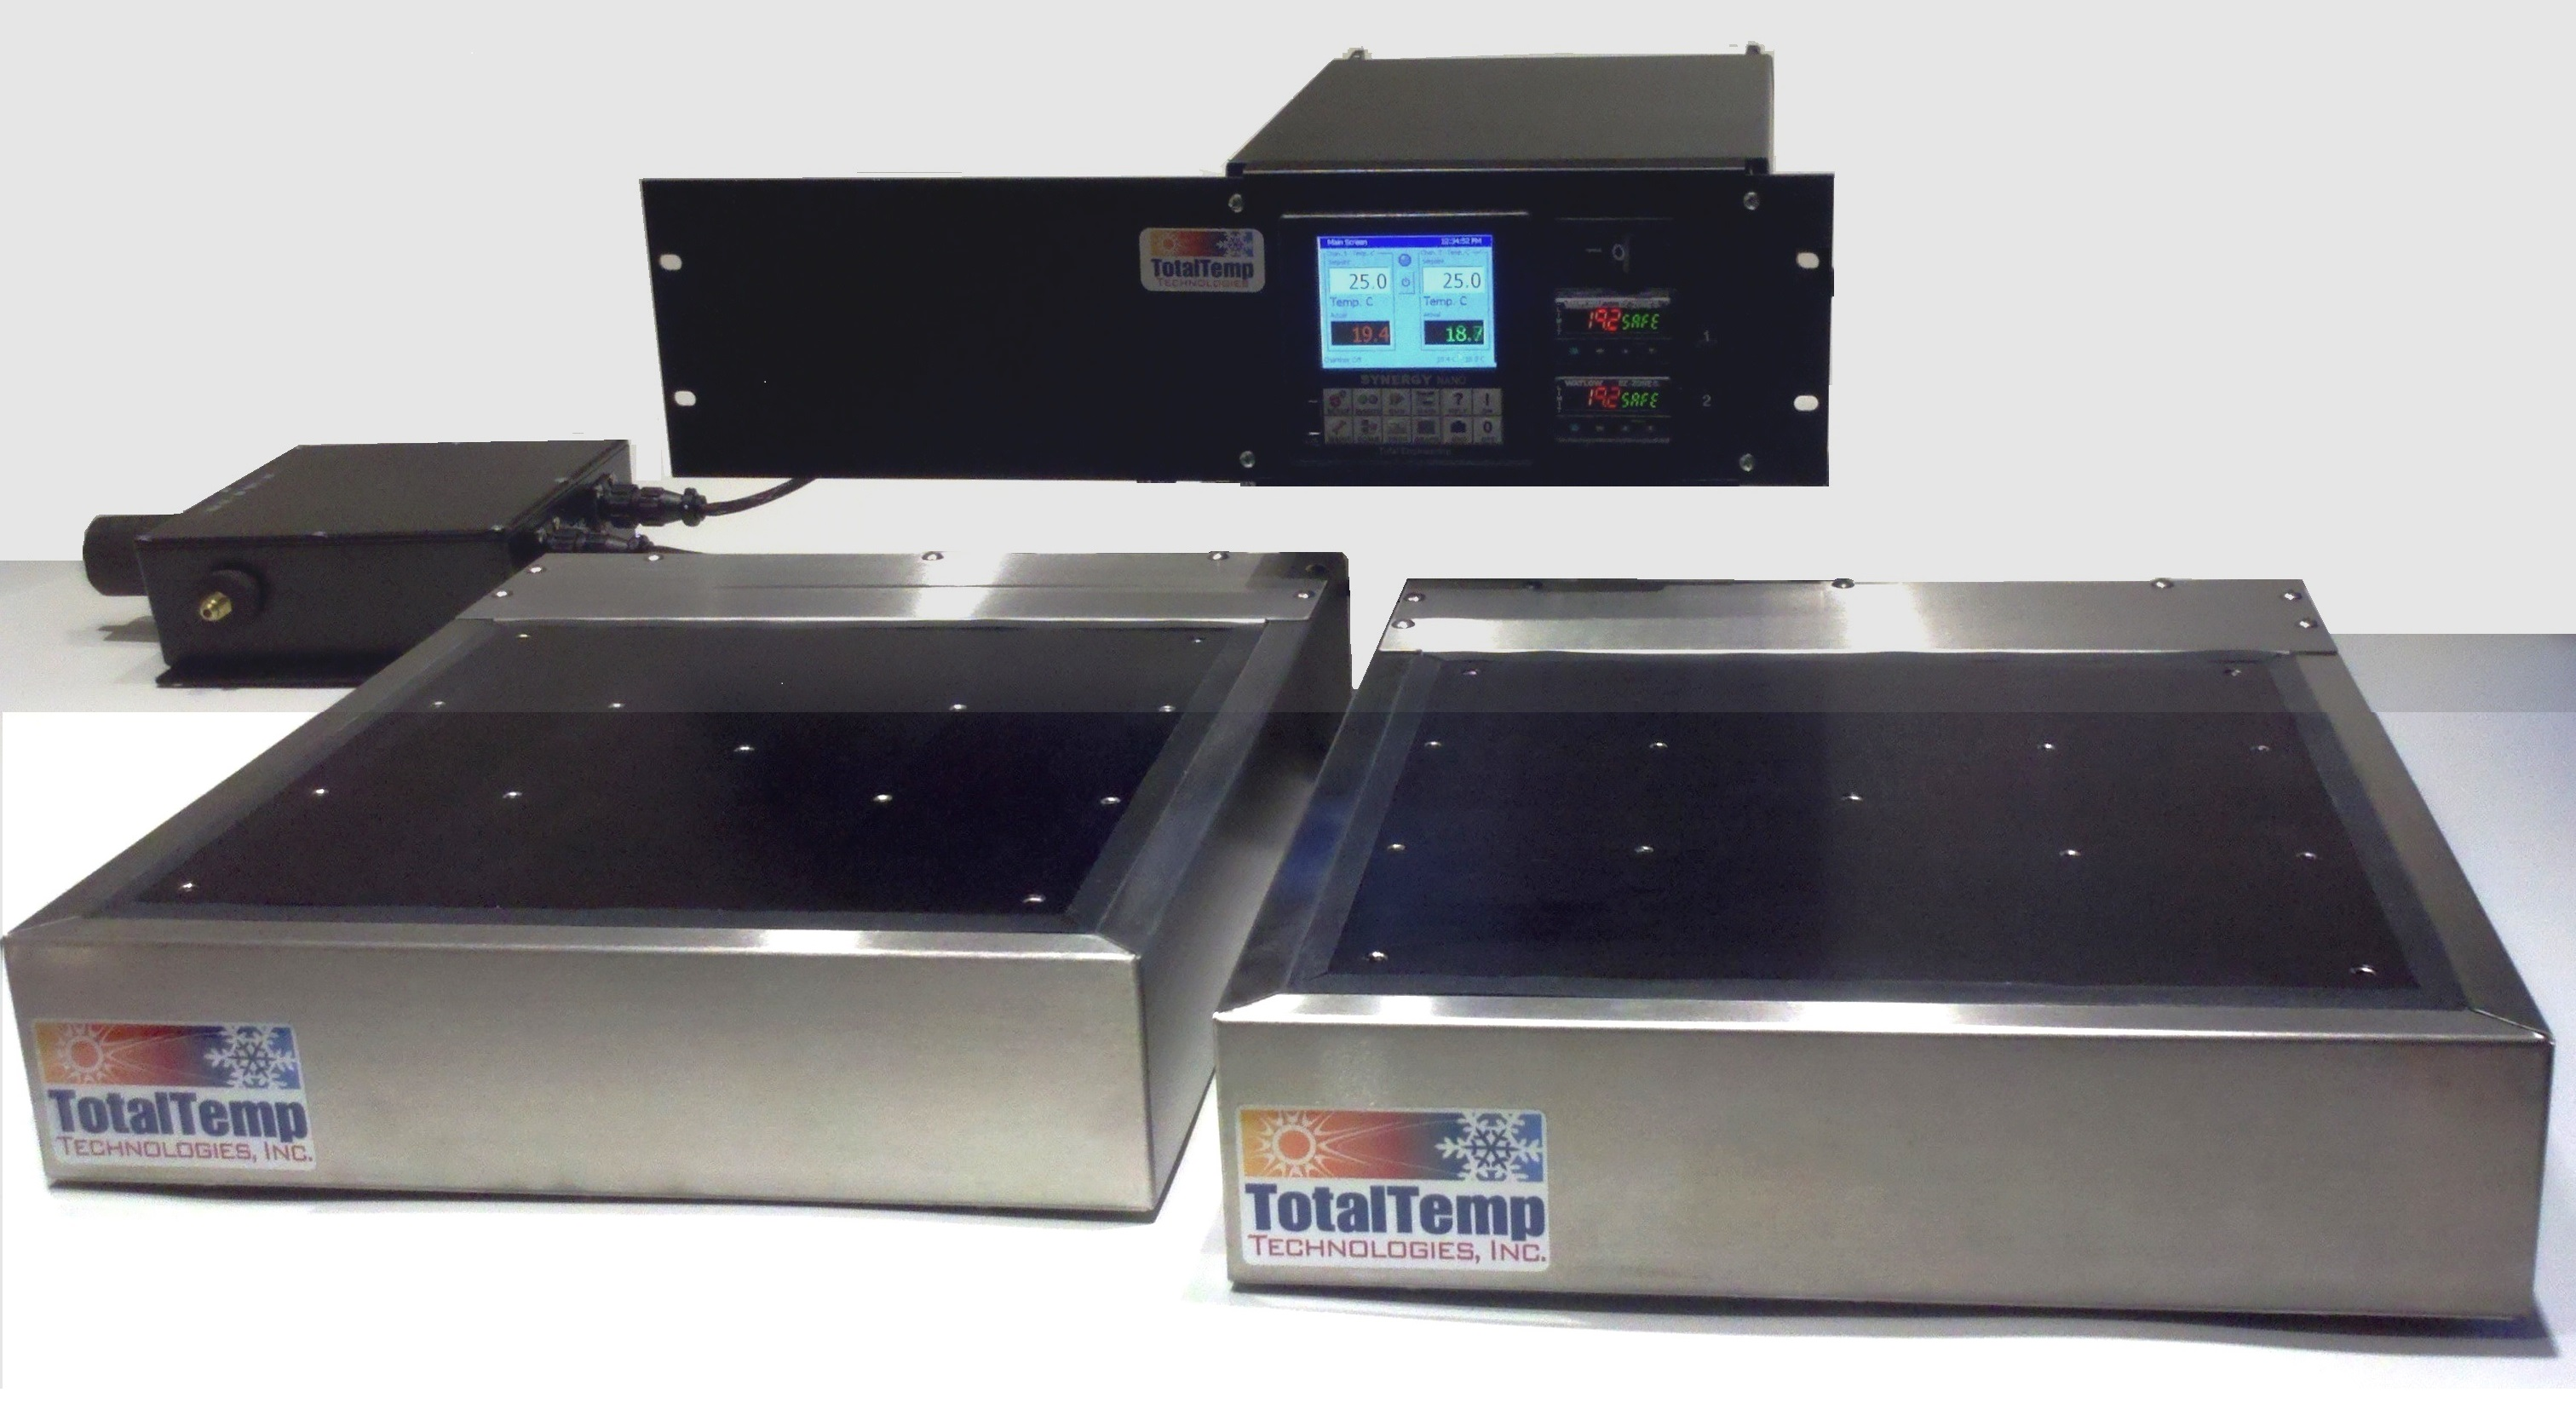 Complete Dual Zone SD144 system with remote valve box, rack mount enclosure and GPIB